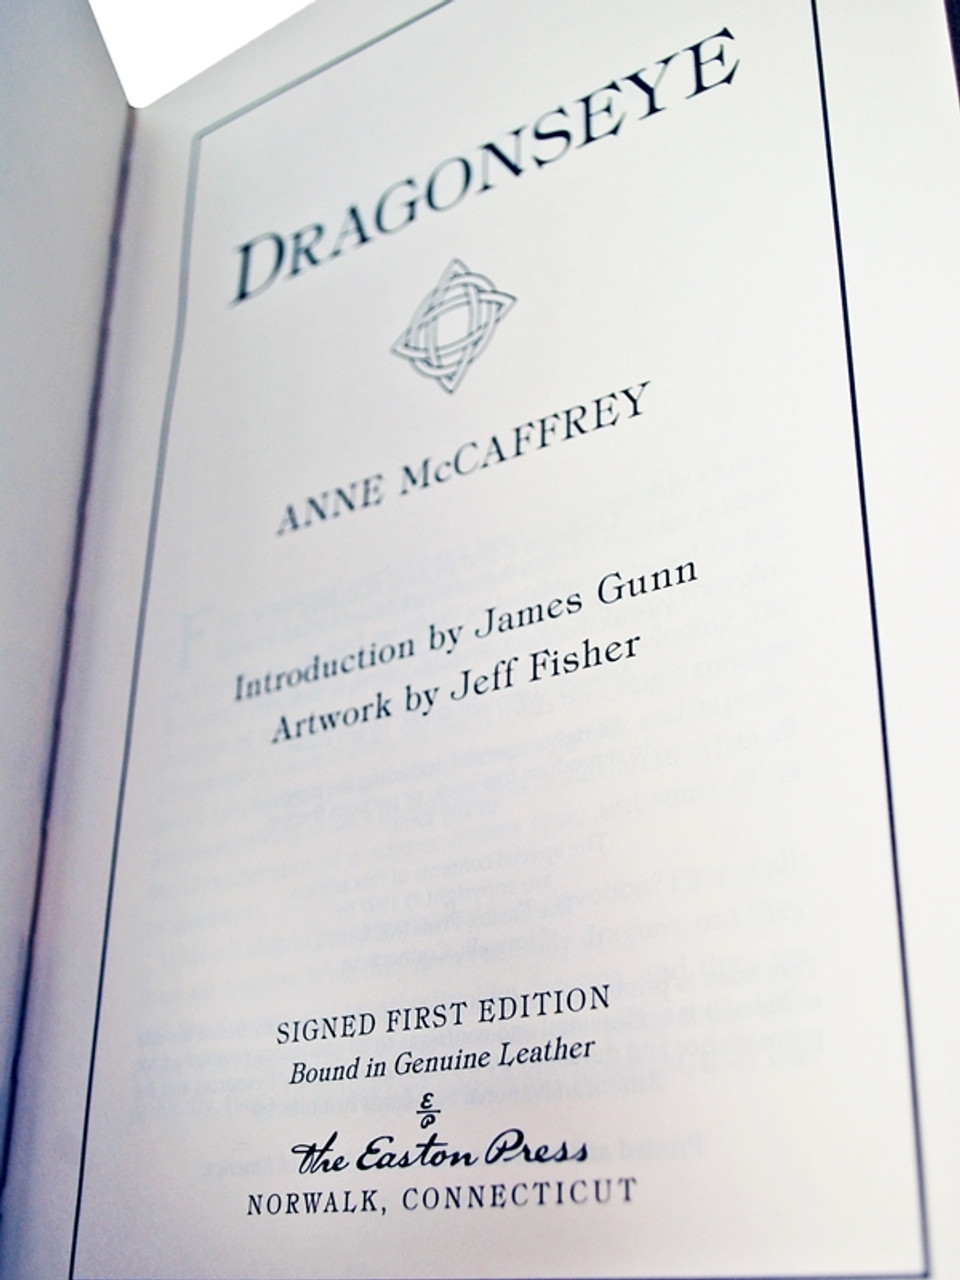 """Anne McCaffrey """"Dragonseye"""" Signed First Edition, Leather Bound Collector's Edition No.1062 of only 1,100 w/COA"""